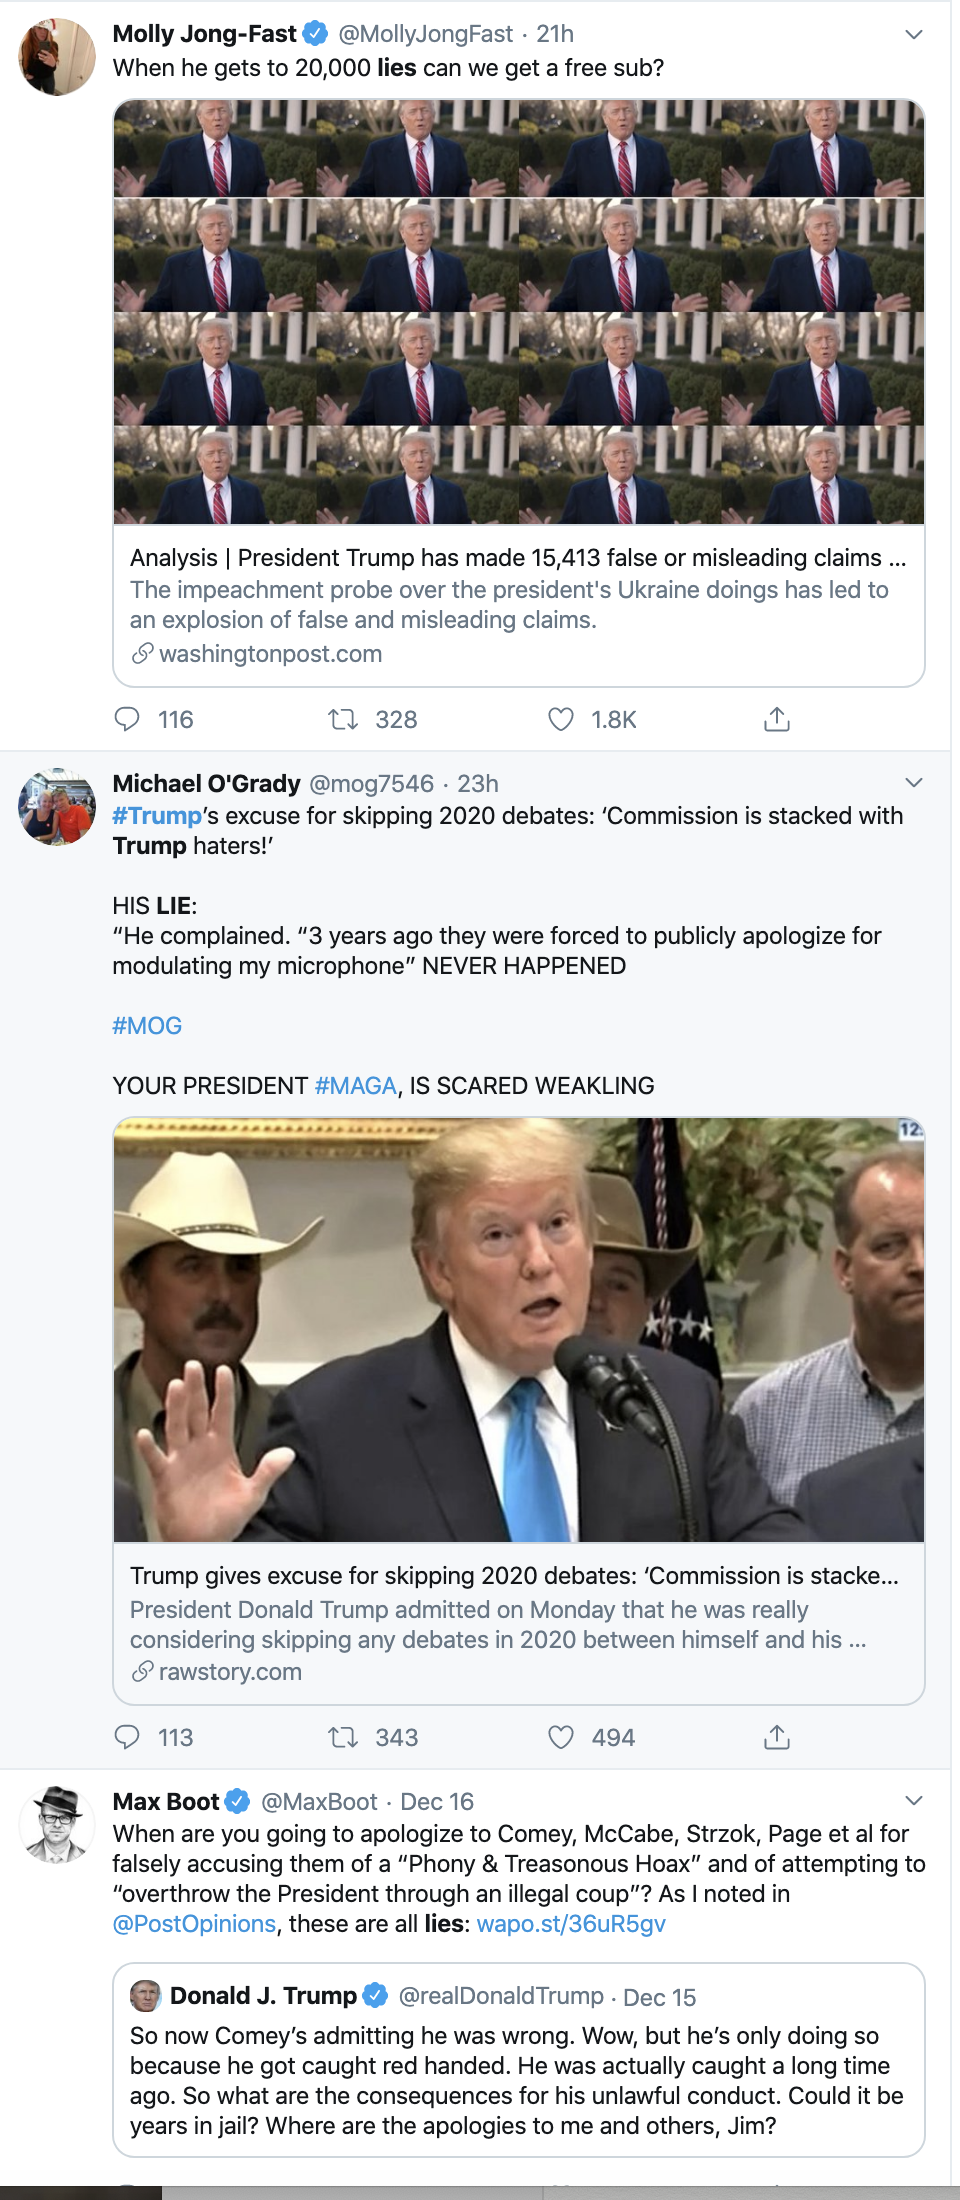 Screen-Shot-2019-12-17-at-8.44.57-AM Fact-Checker Tallies Tremendous Trove Of Trump's 2019 Lies Corruption Donald Trump Featured National Security Top Stories